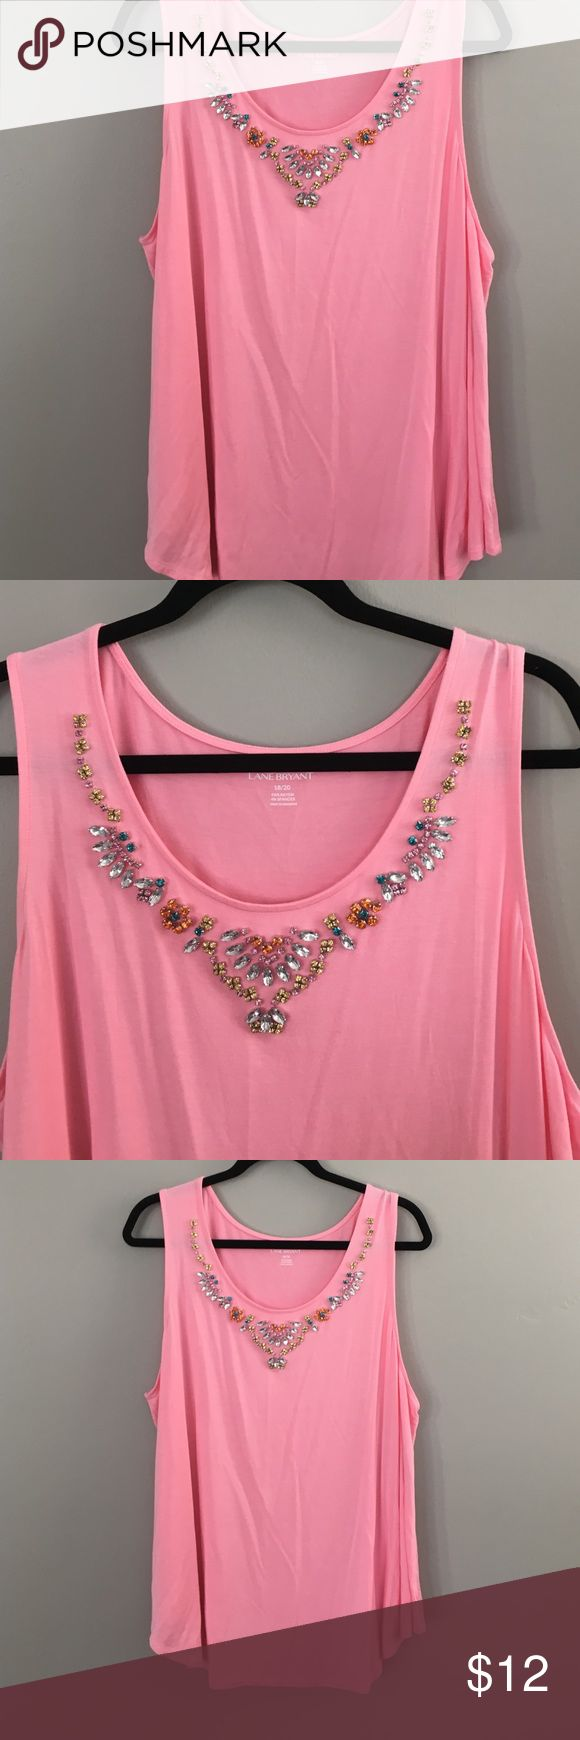 Layne Bryant summer pink shirt Pink summer shirt with rhinestones size 18/20 96 rayon  and 4 spandex Lane Bryant Tops Blouses